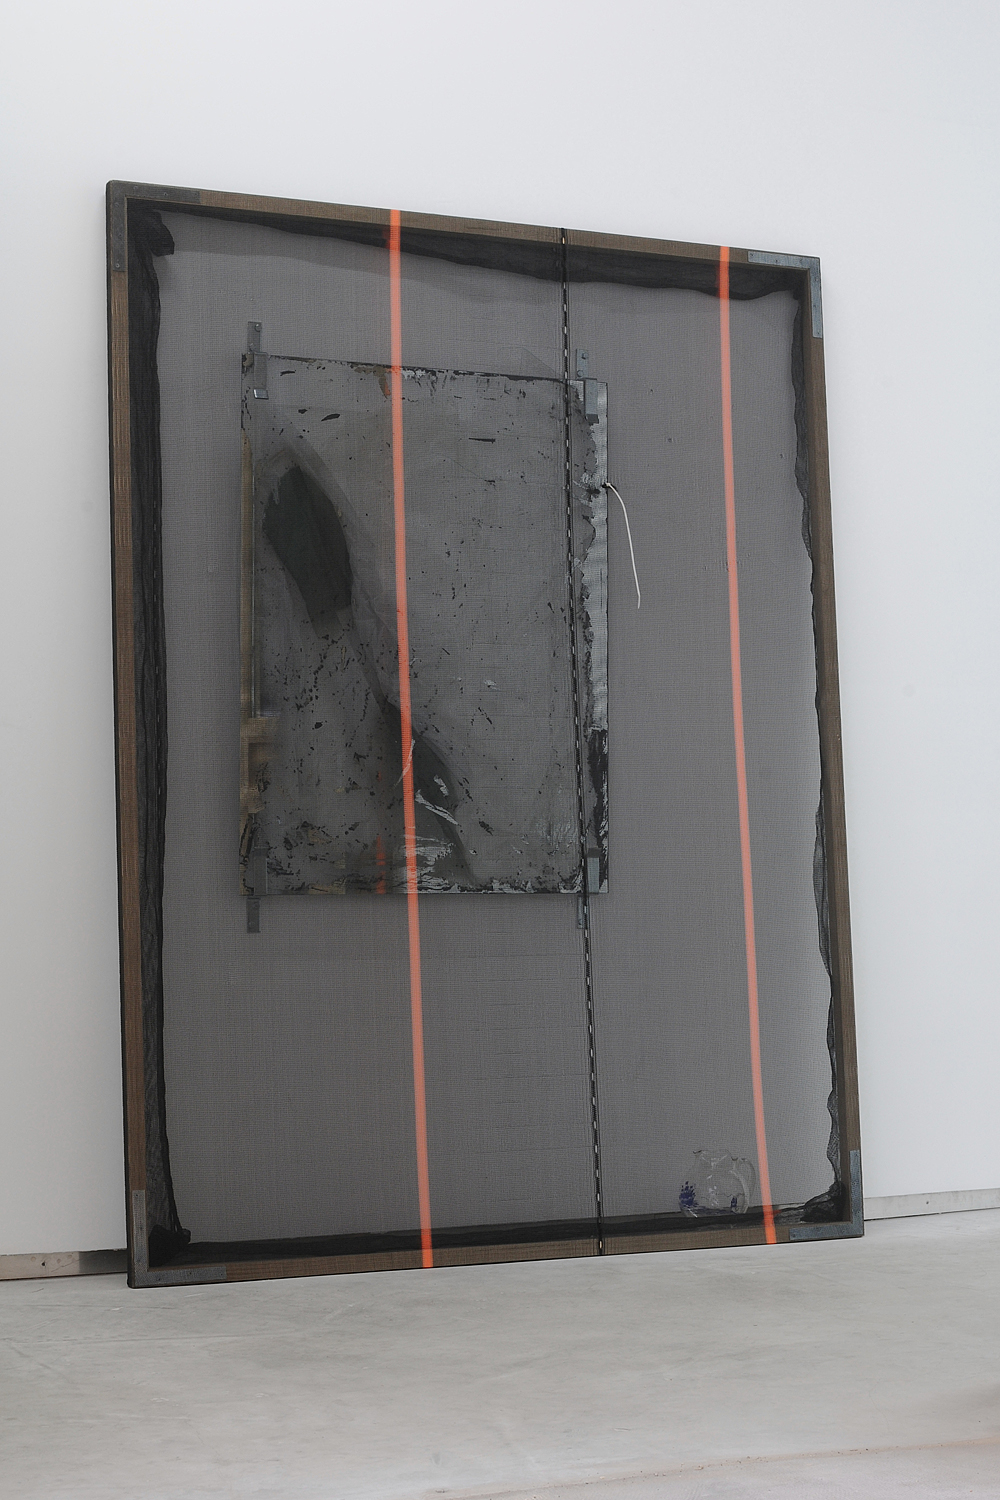 Valerie Snobeck,  New Construct,  2011, debris netting, partially removed mirror, peeled prints on plastic, depression glass, door barricade brackets, wood frame, gesso, hardware, 243,9 x 182,9 cm